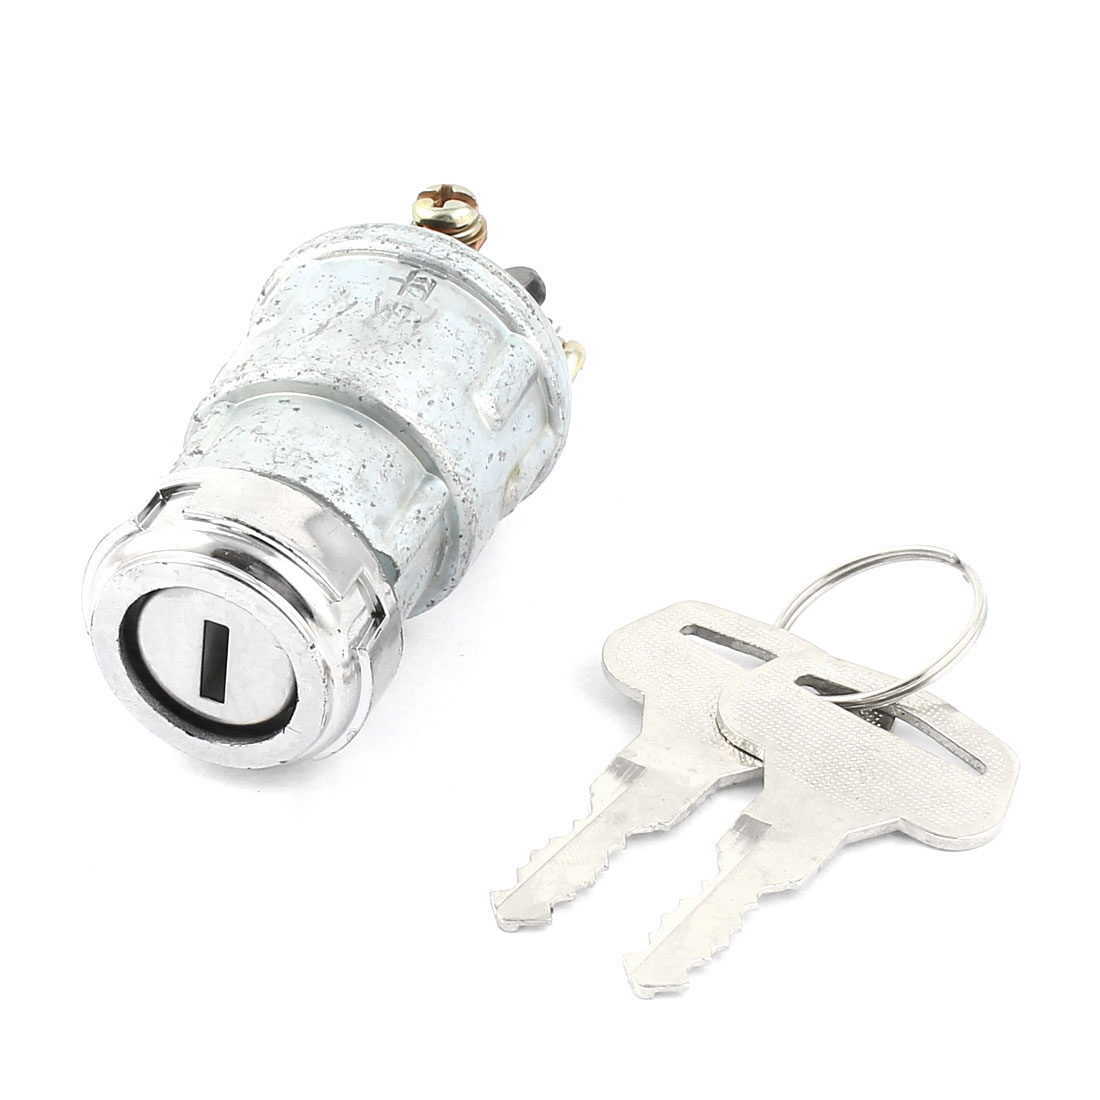 Silver Tone Metal SPST Lock Ignition Switch DC 12V-60V 10A for Car Auto